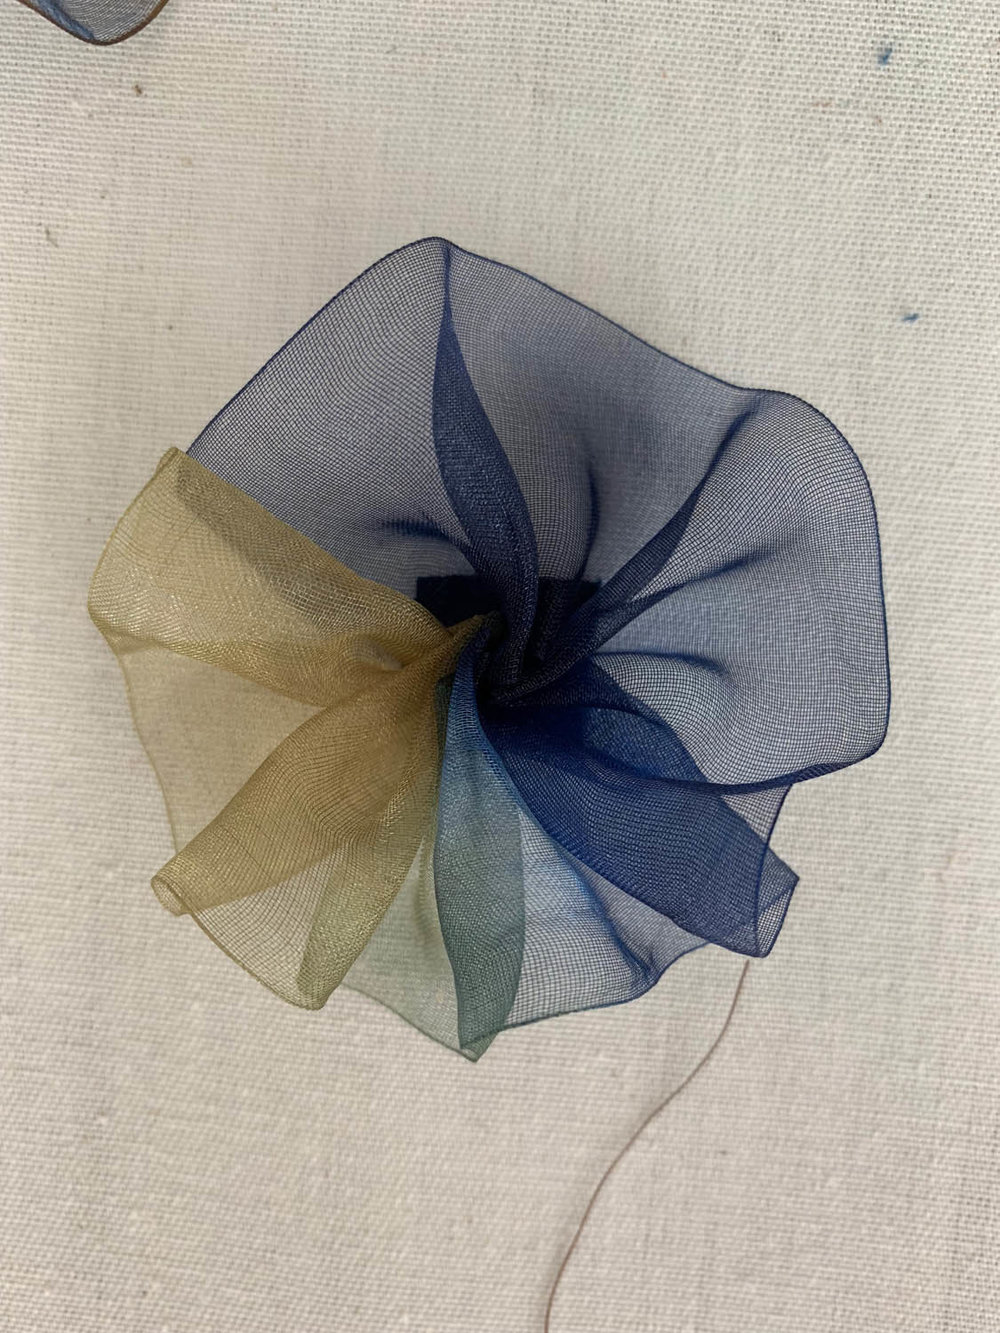 gathered variegated blue and green ribbon gathered together to make a silk ribbon flower for embellishments